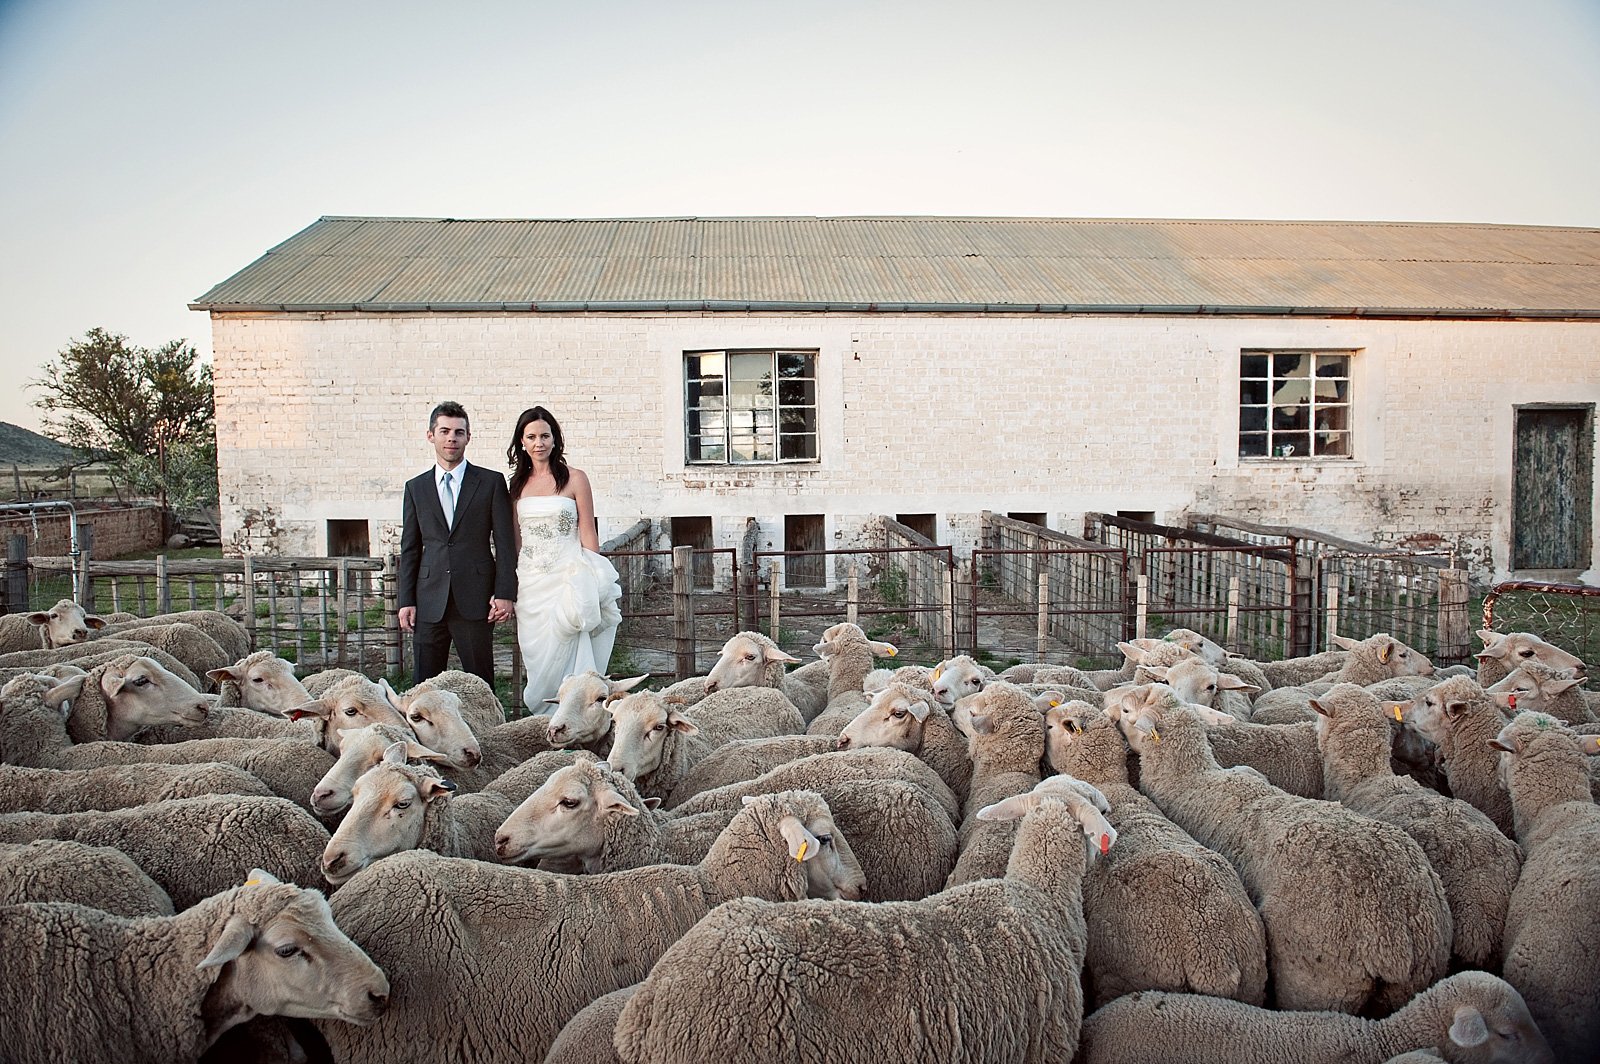 Karoo-Wedding-Photographer-Jacki-Bruniquel-001